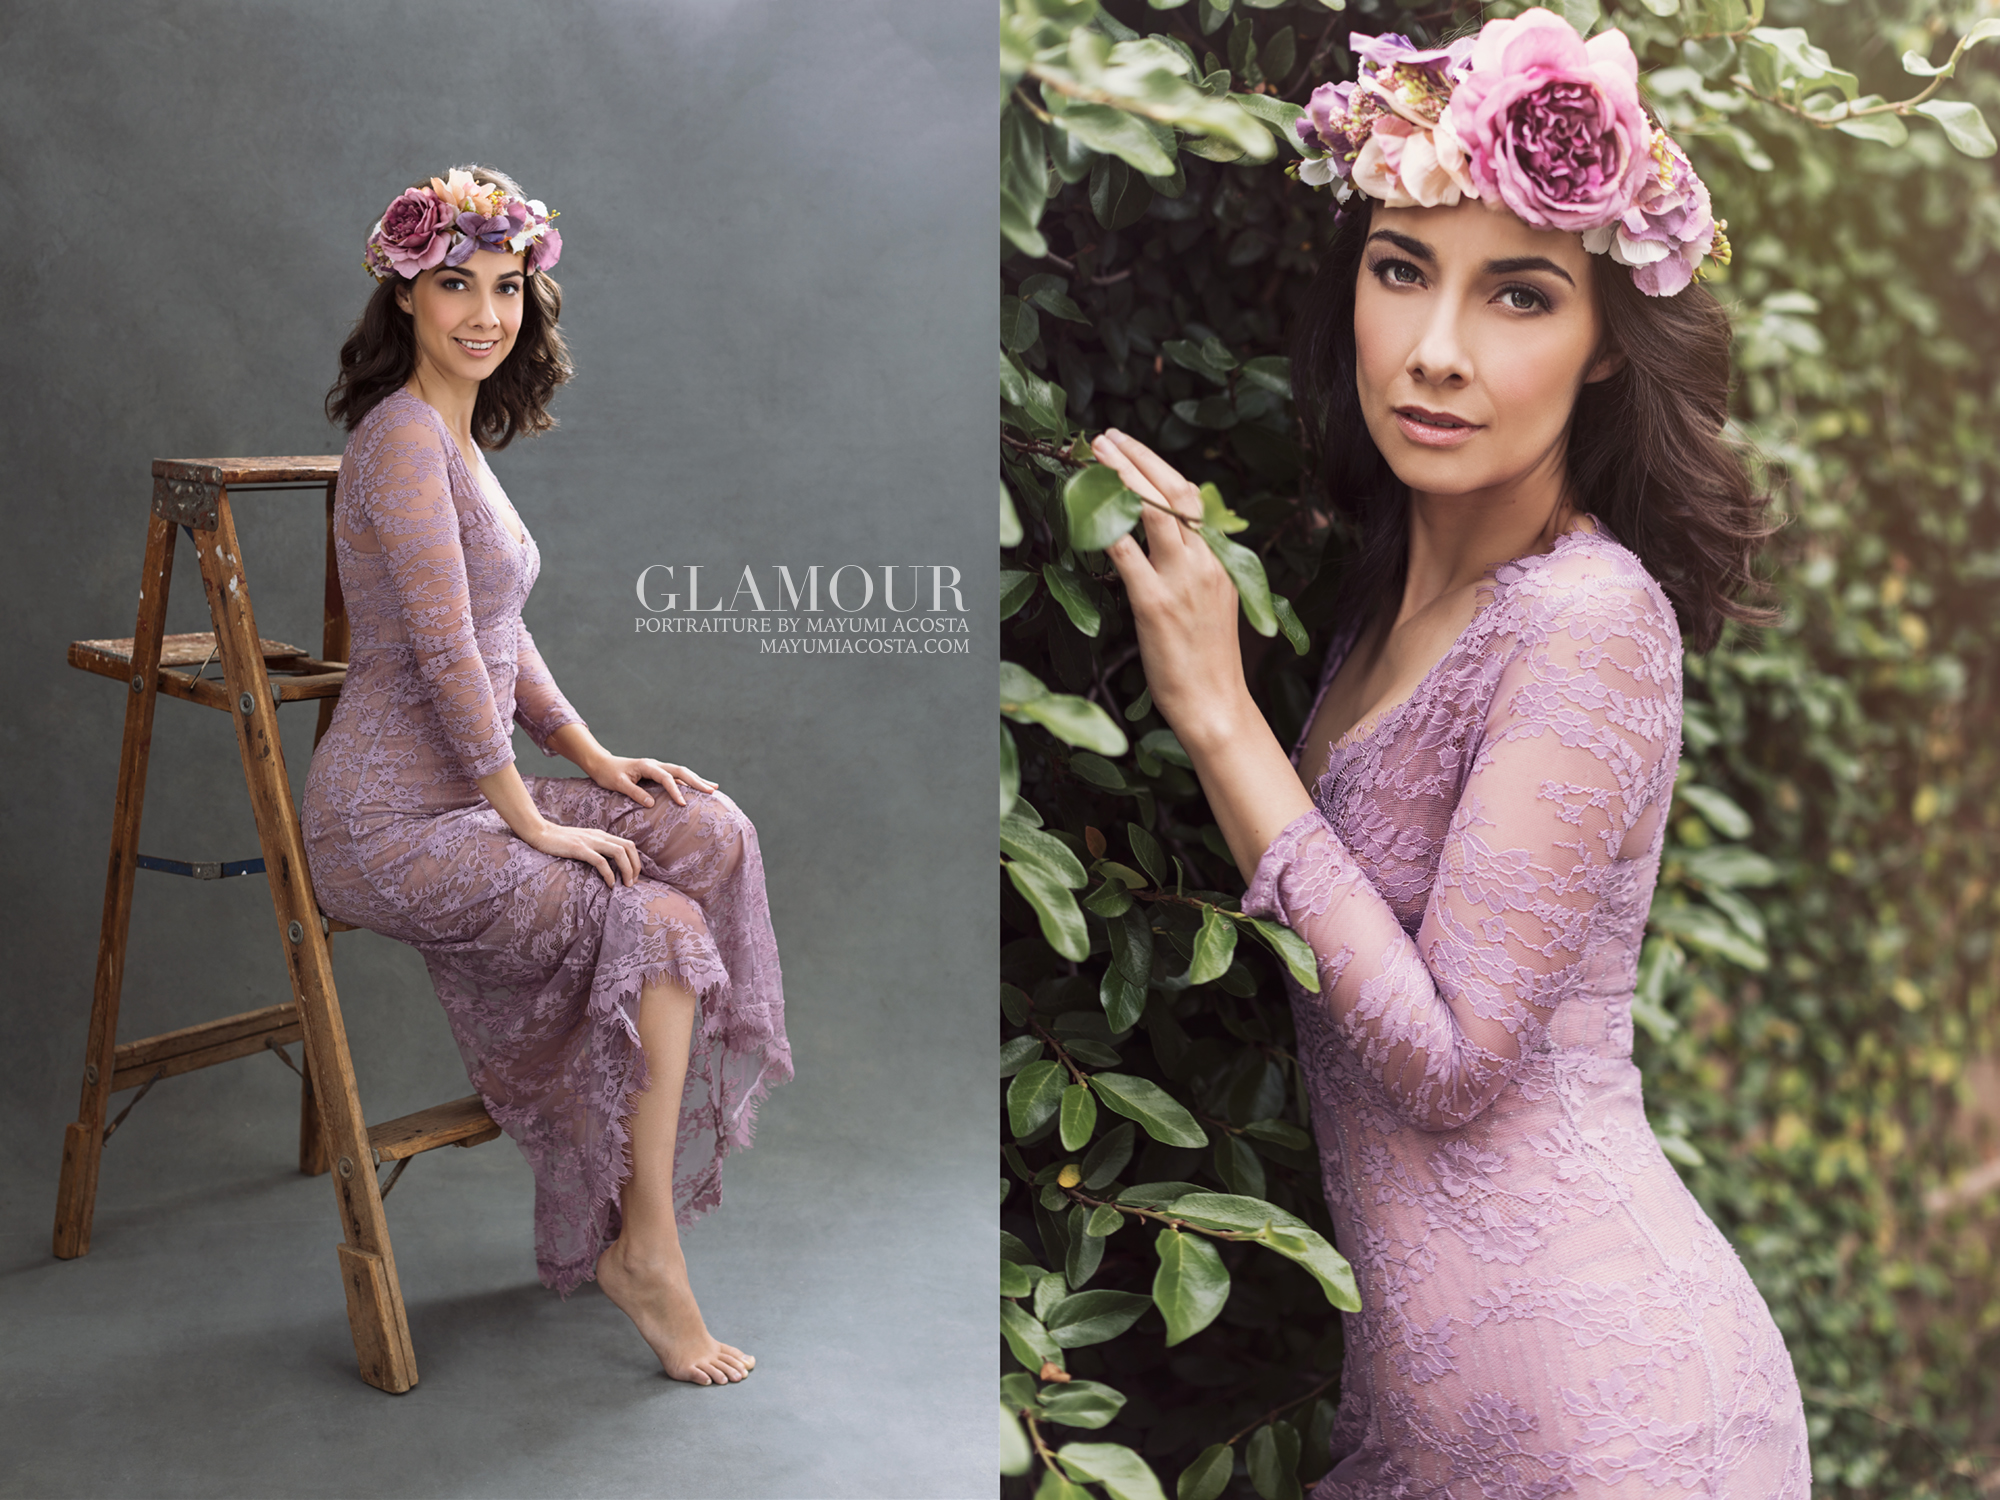 Studio and outdoor glamour photography by Mayumi Acosta.jpg